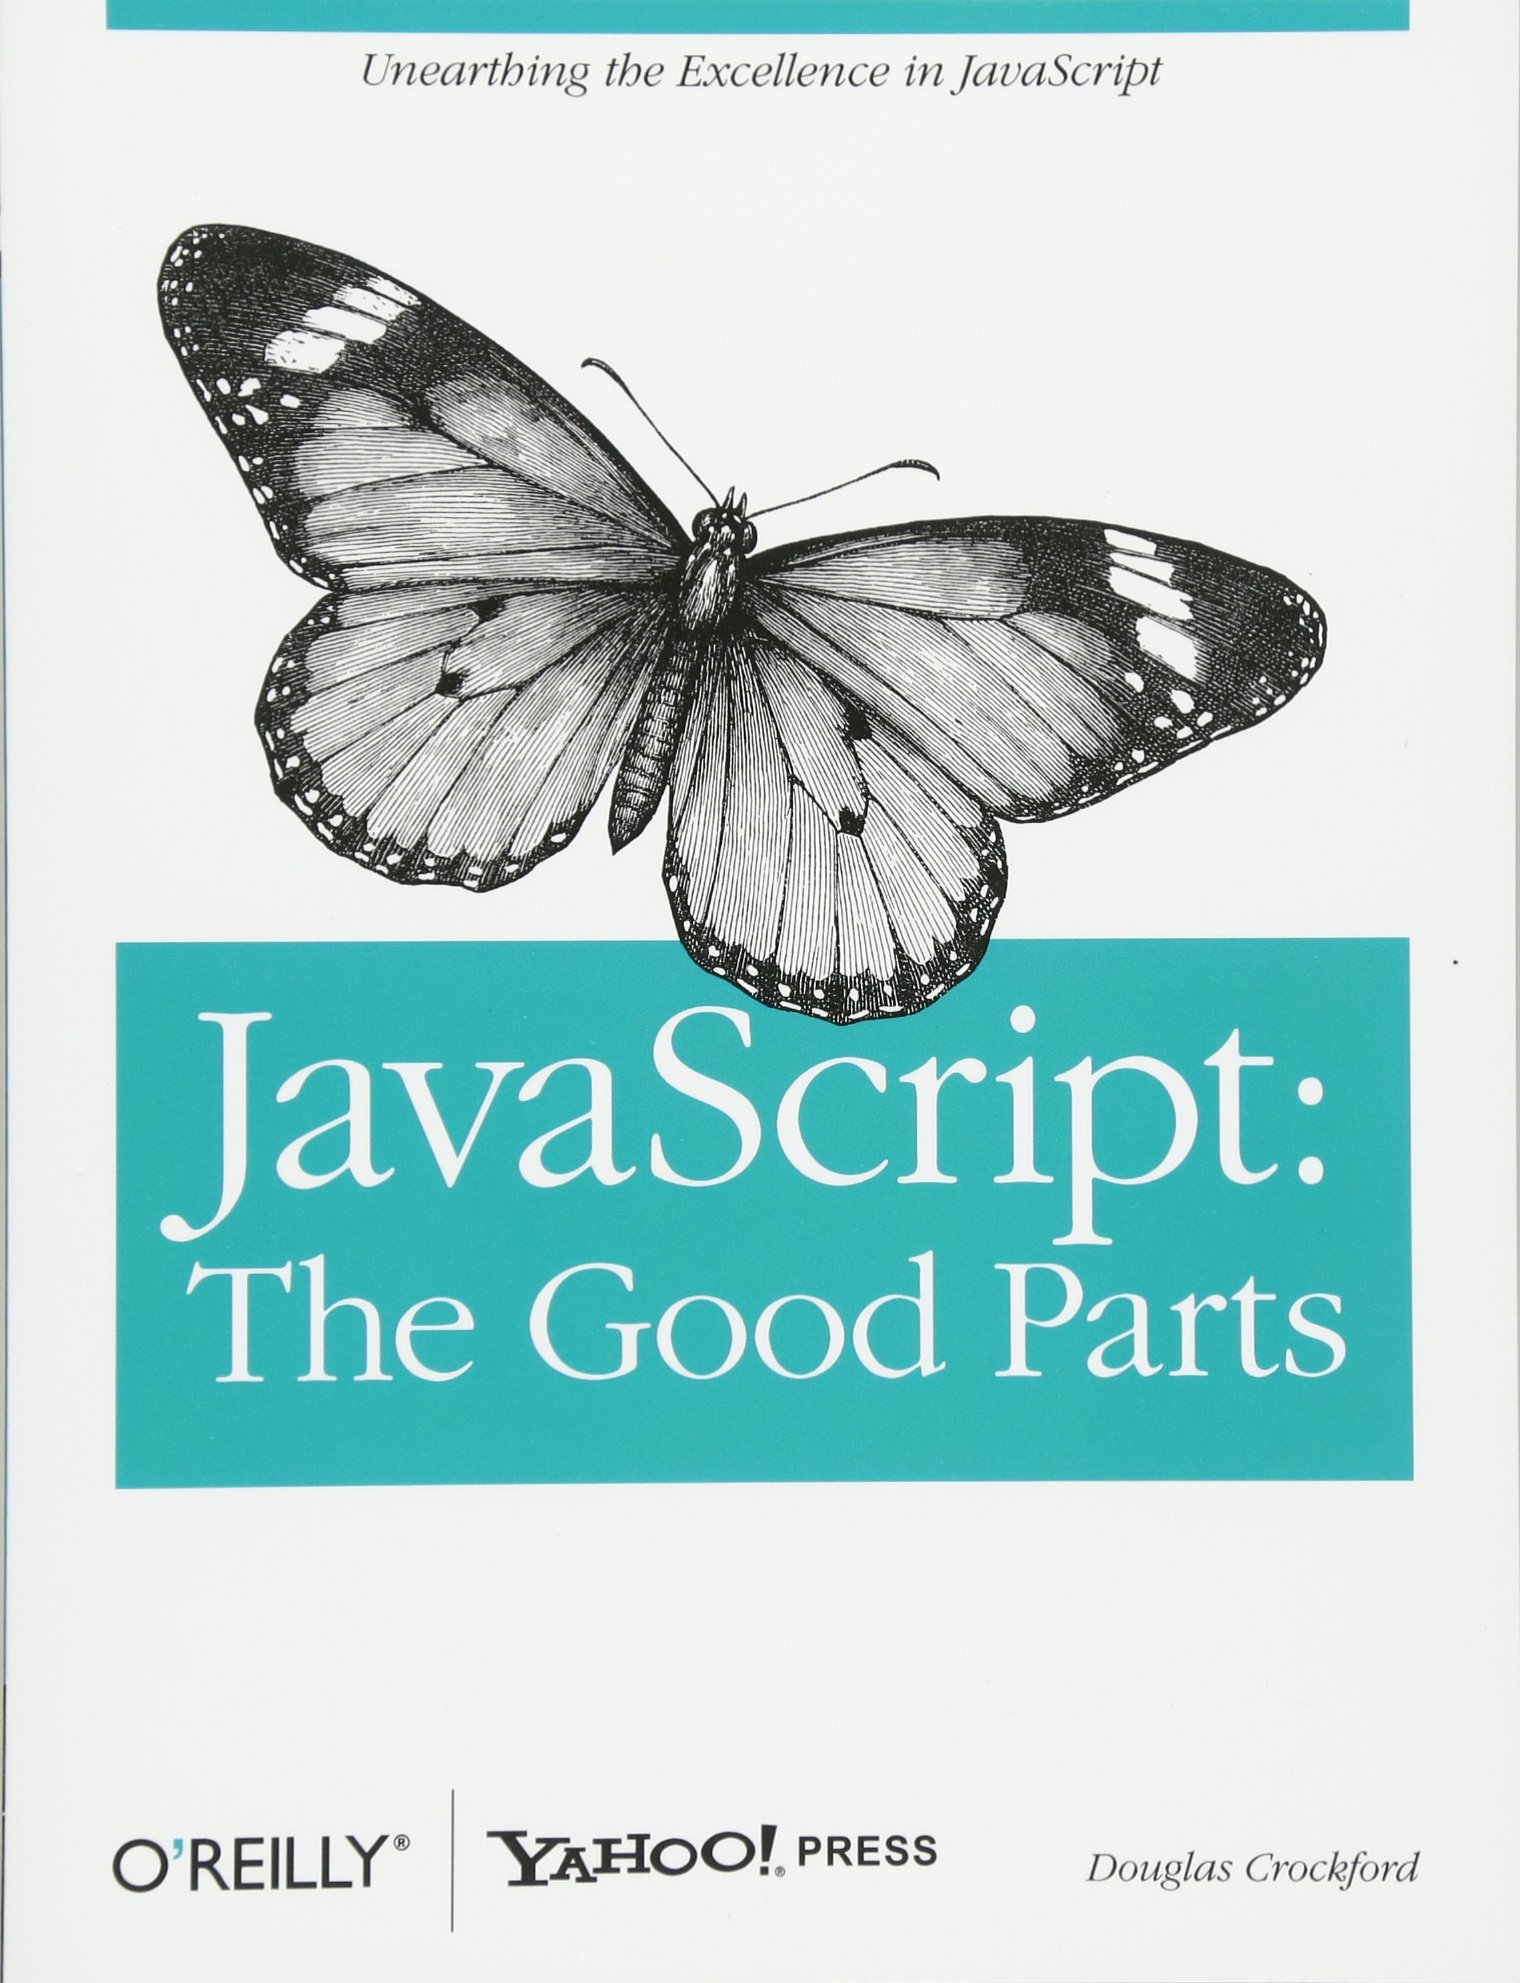 Image OfJavaScript: The Good Parts